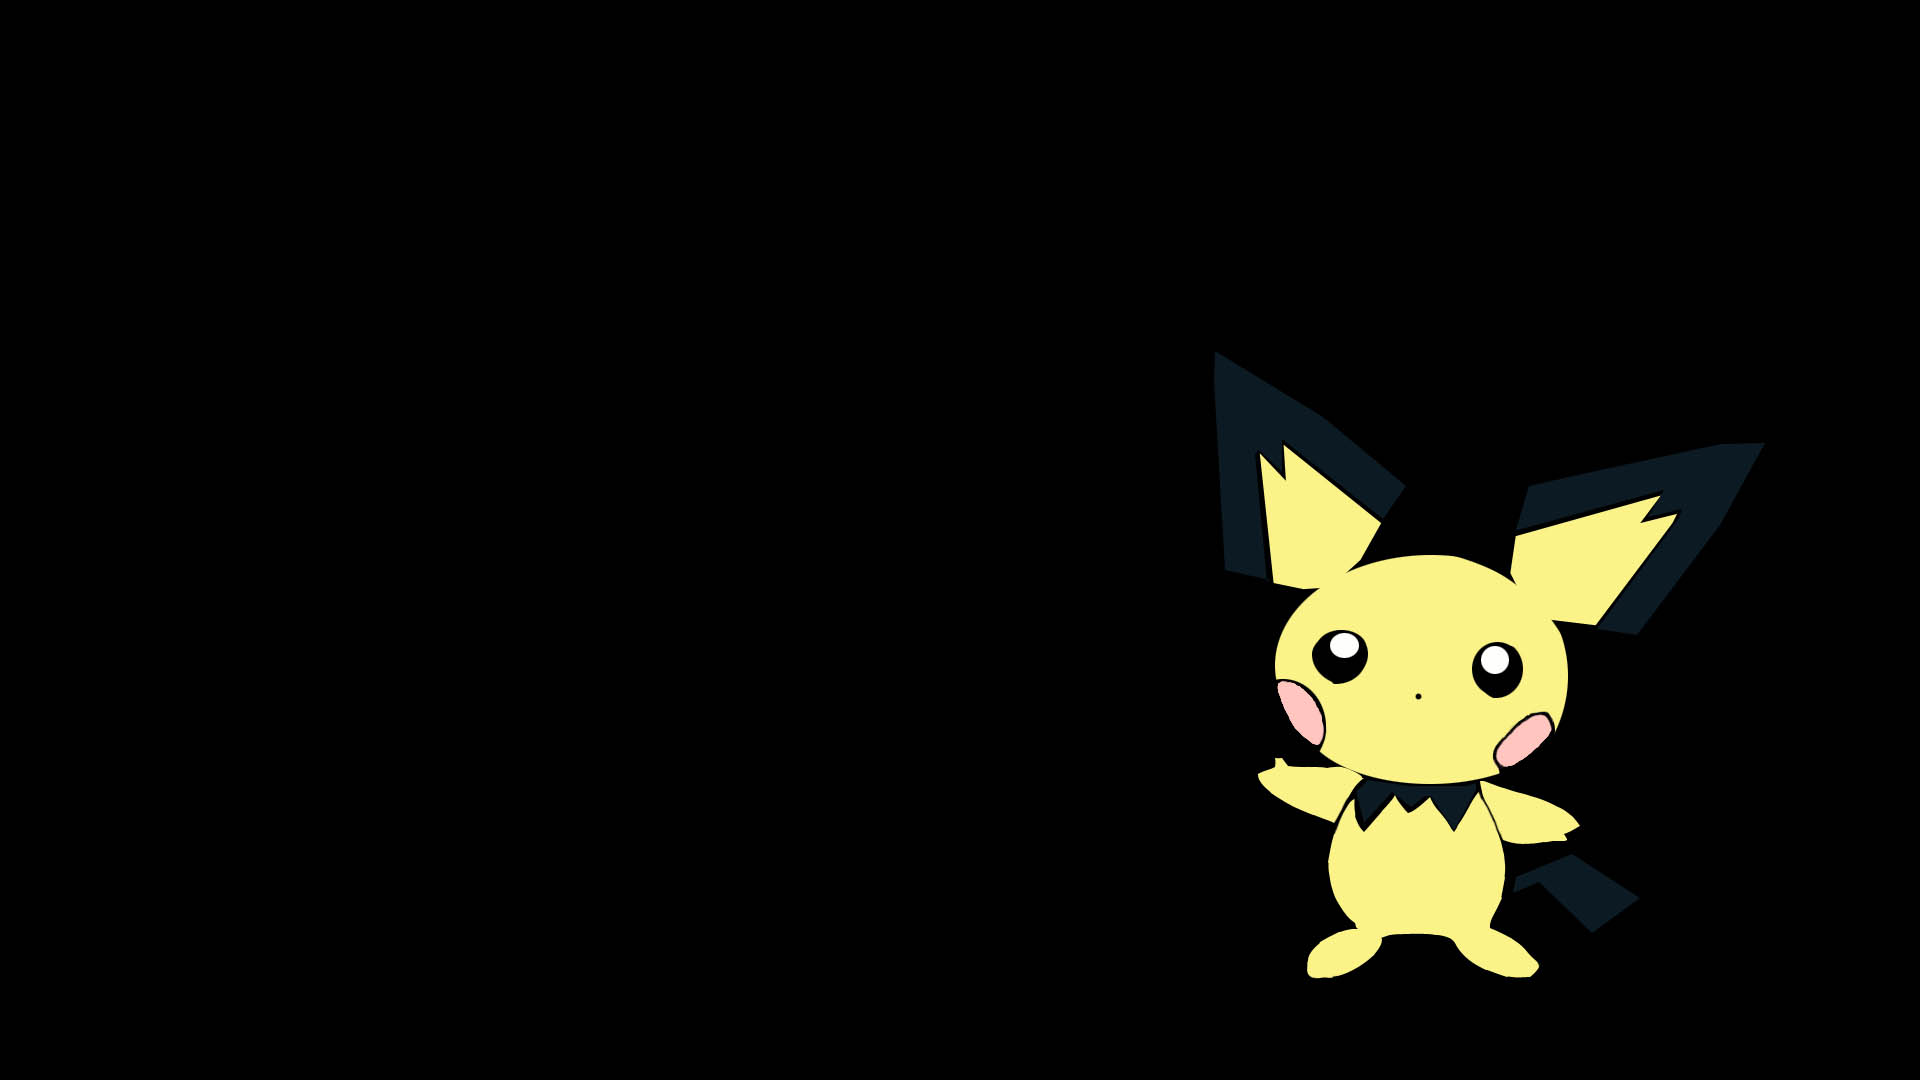 Pokemon Black Wallpaper 1920x1080 Pokemon Black Background 1920x1080